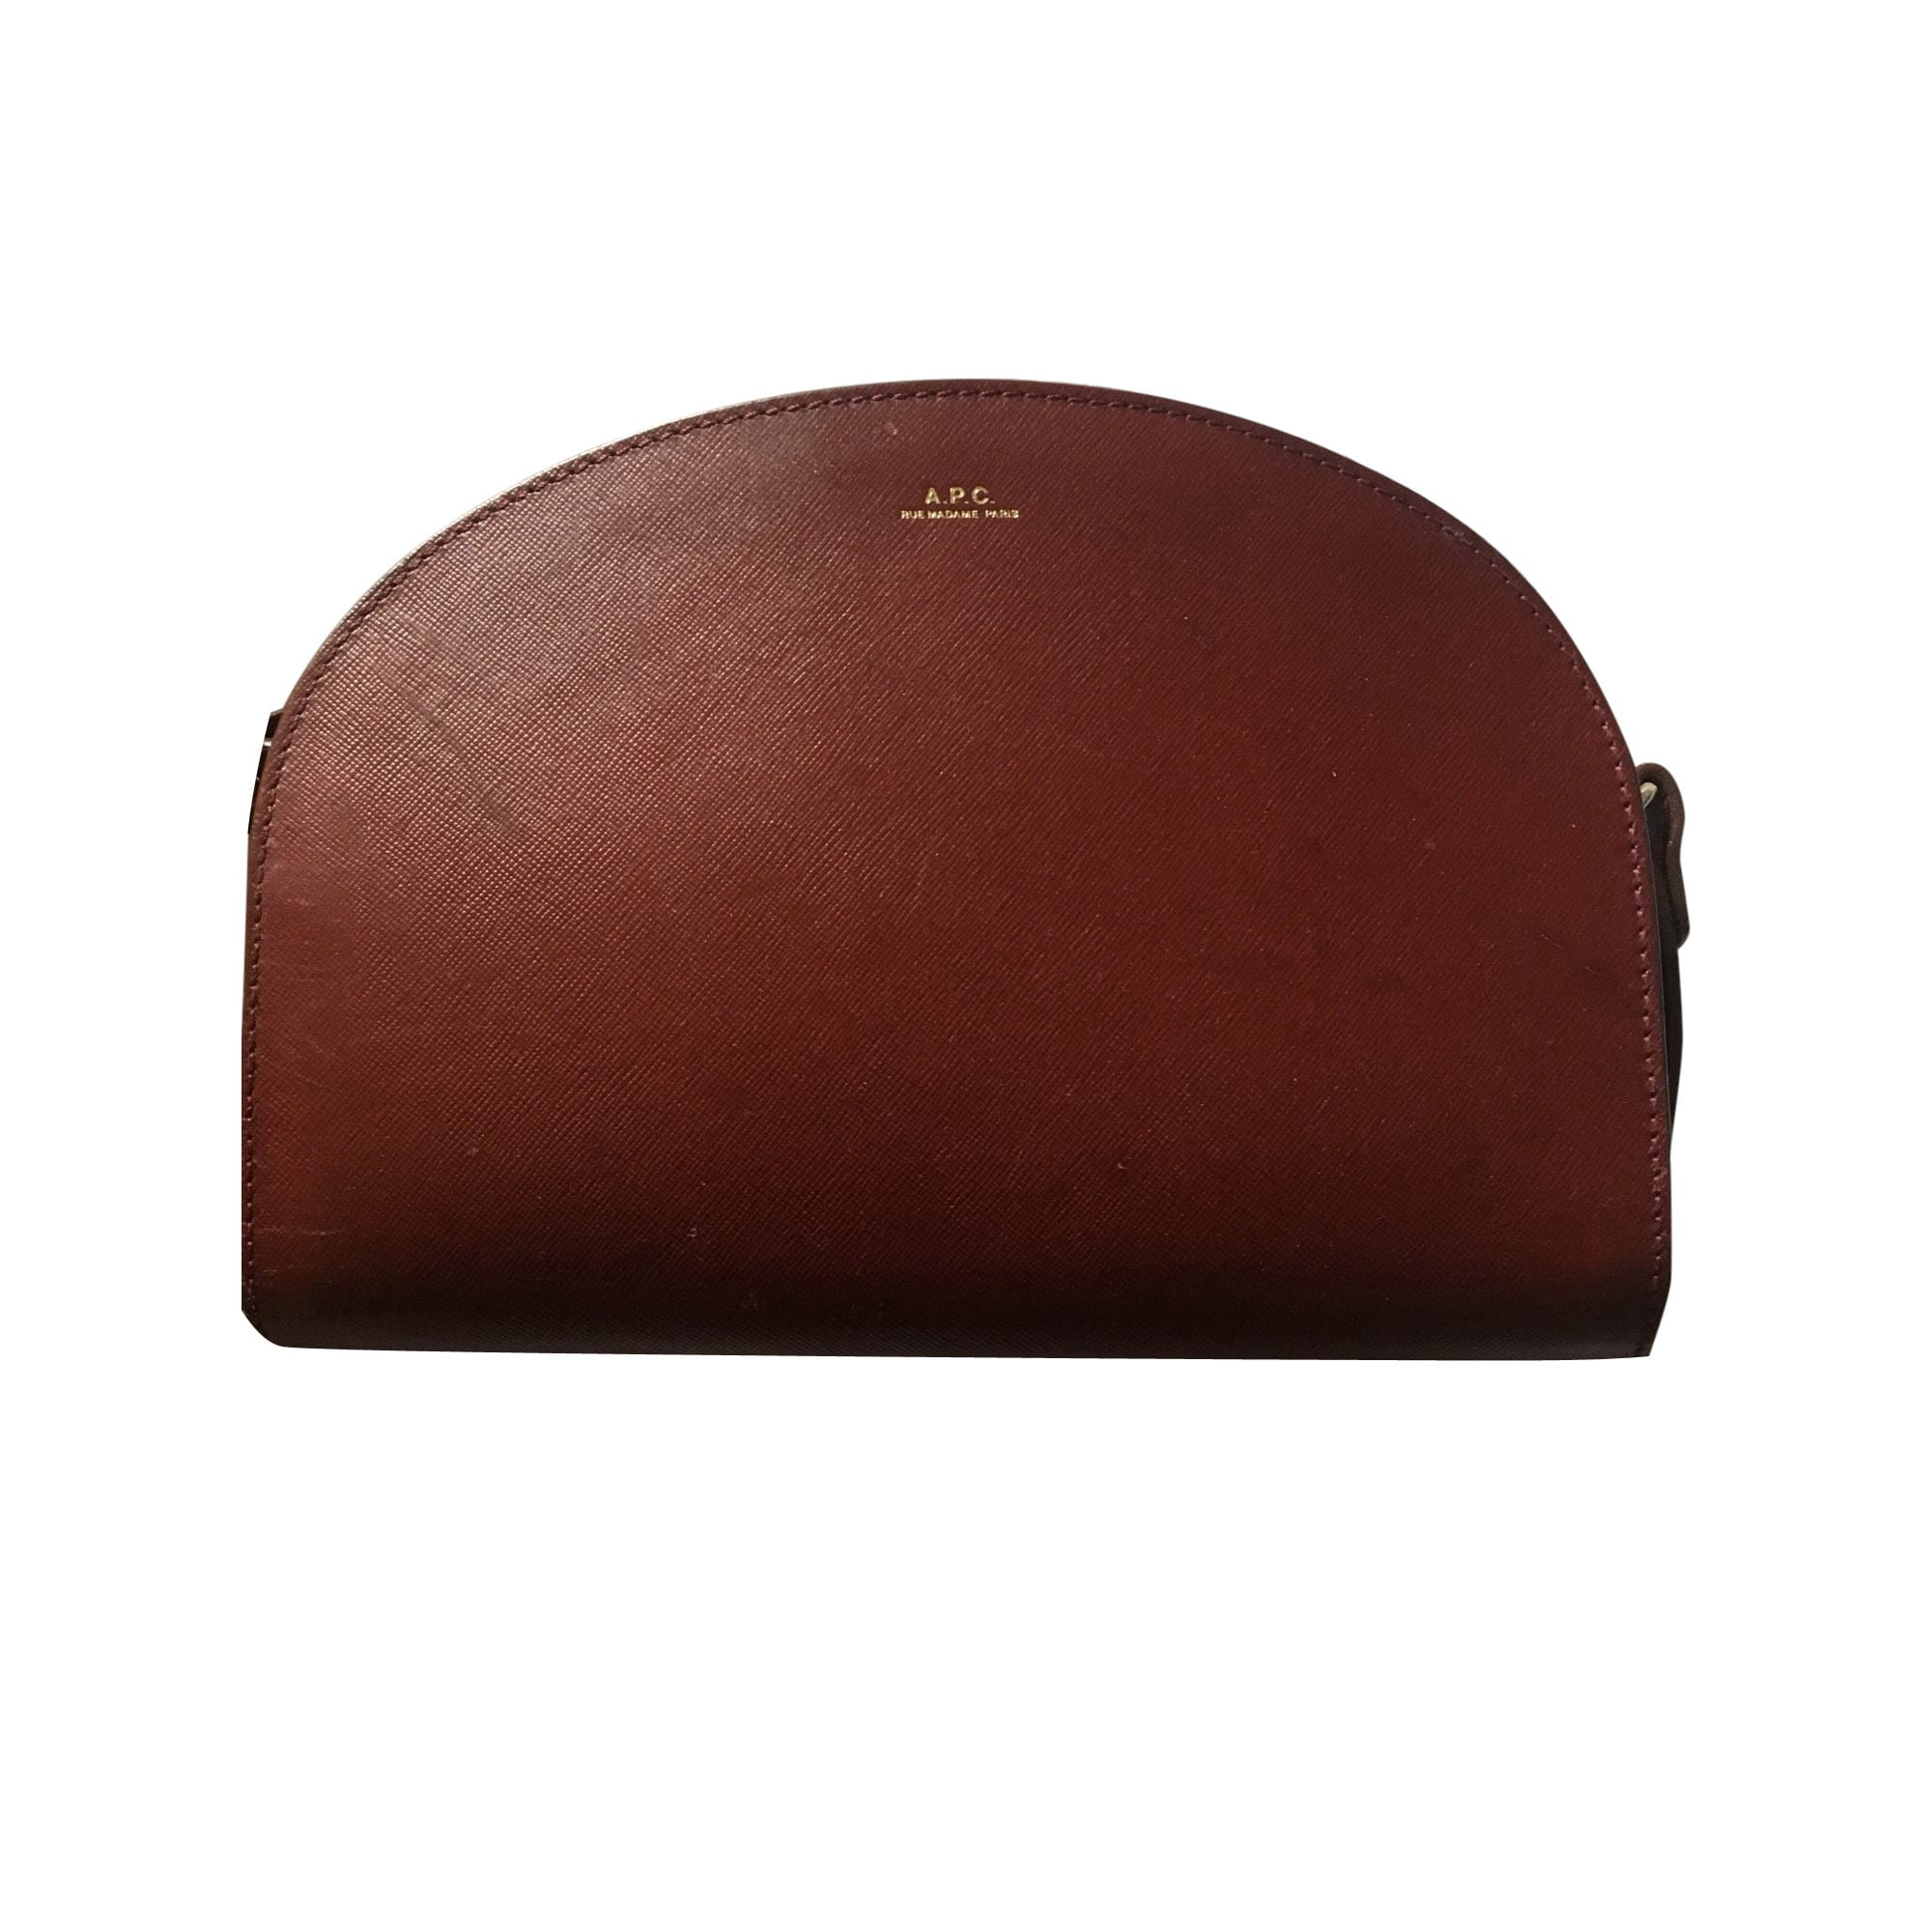 Leather Handbag A.P.C. Red, burgundy